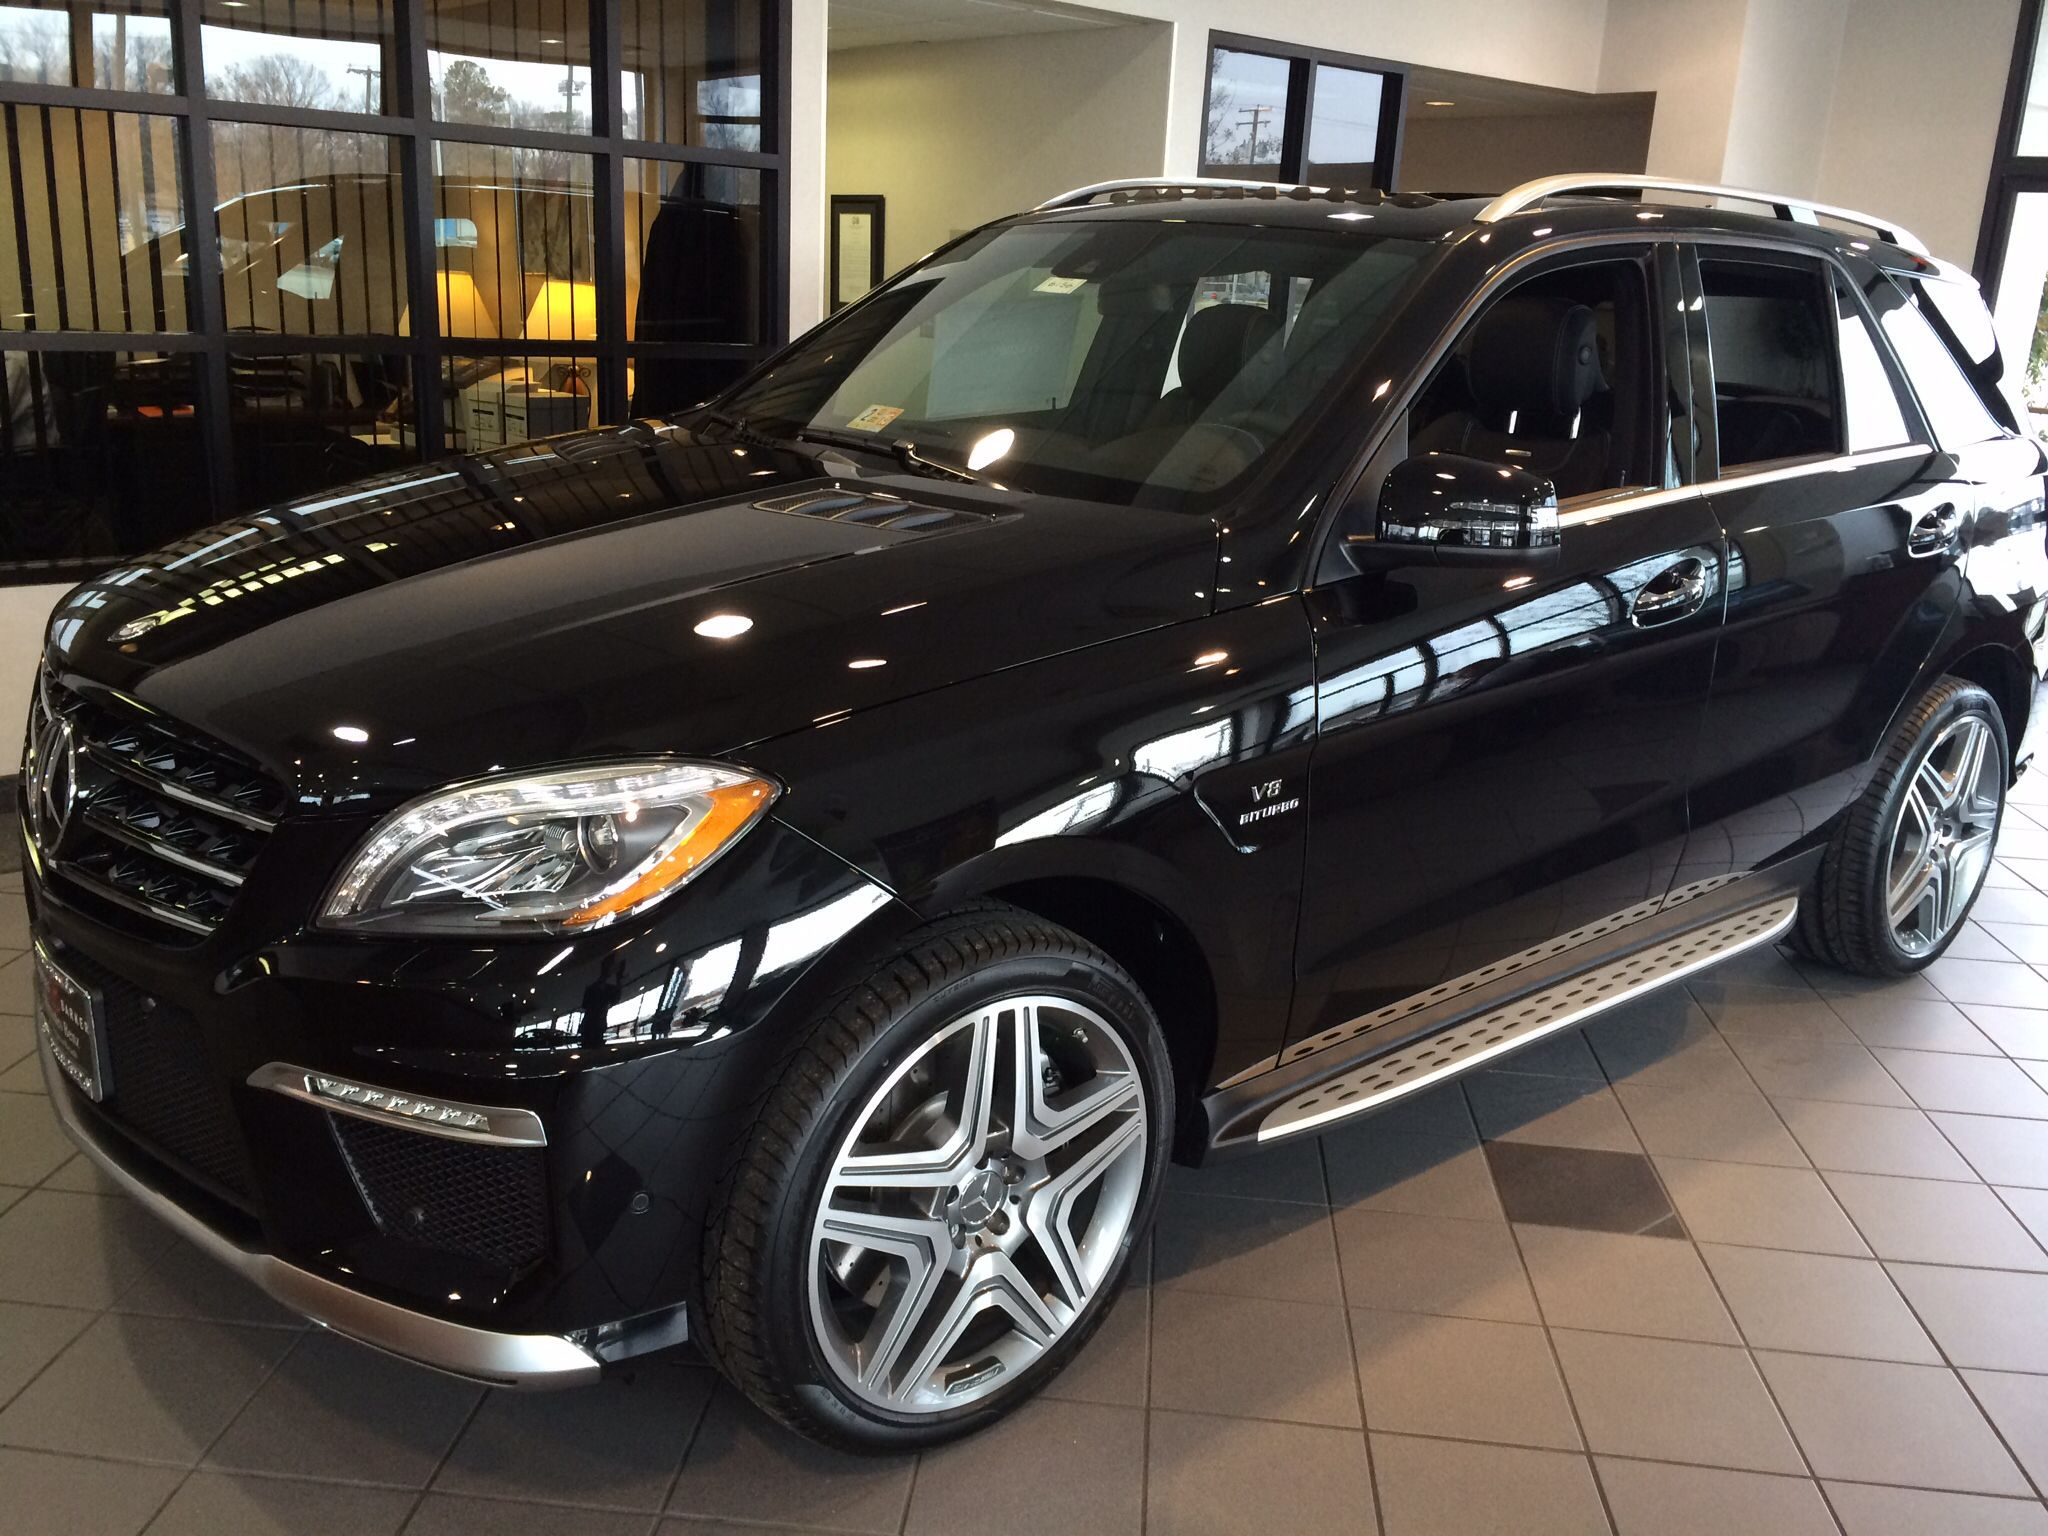 2014 ML63 AMG at Mercedes Benz of Virginia Beach